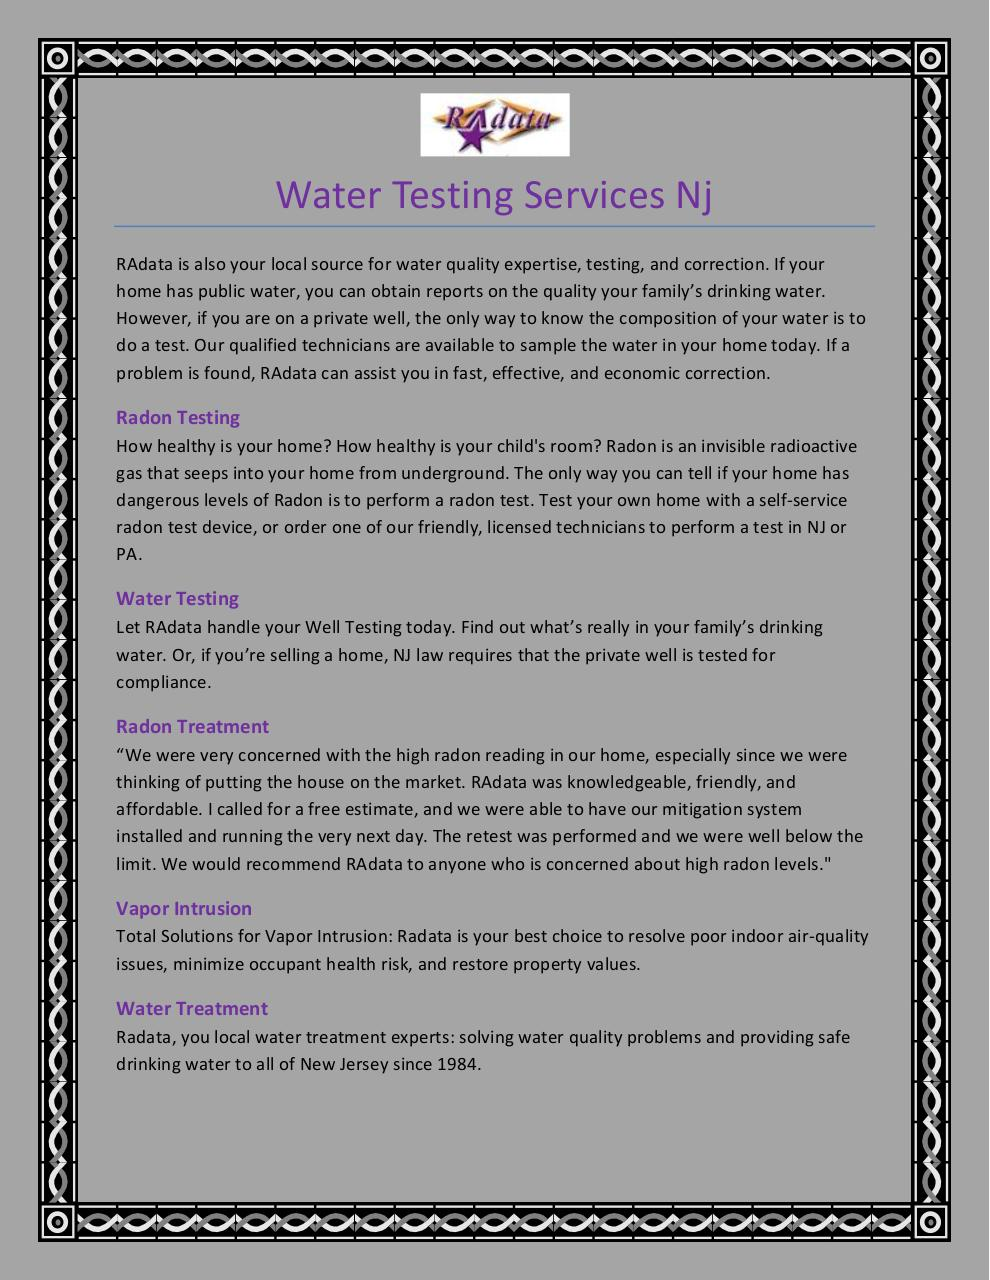 Water Testing Services Nj.pdf - page 1/3